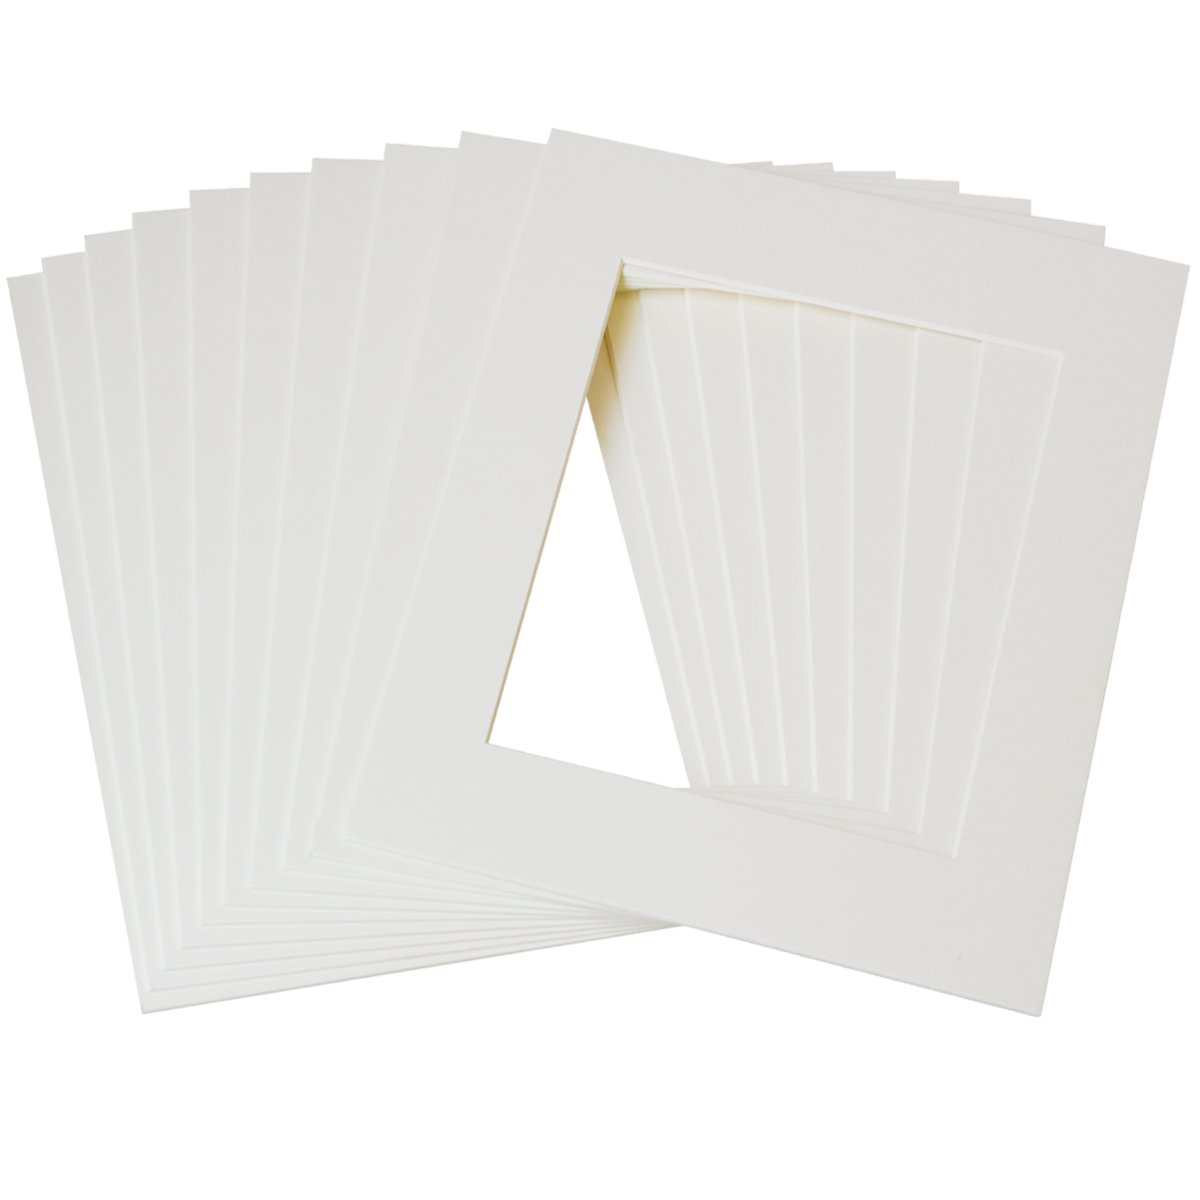 Betus 11x14 White Picture Mats, White Core Bevel Cut for 8x10 Pictures - Pack of 10 by Betus